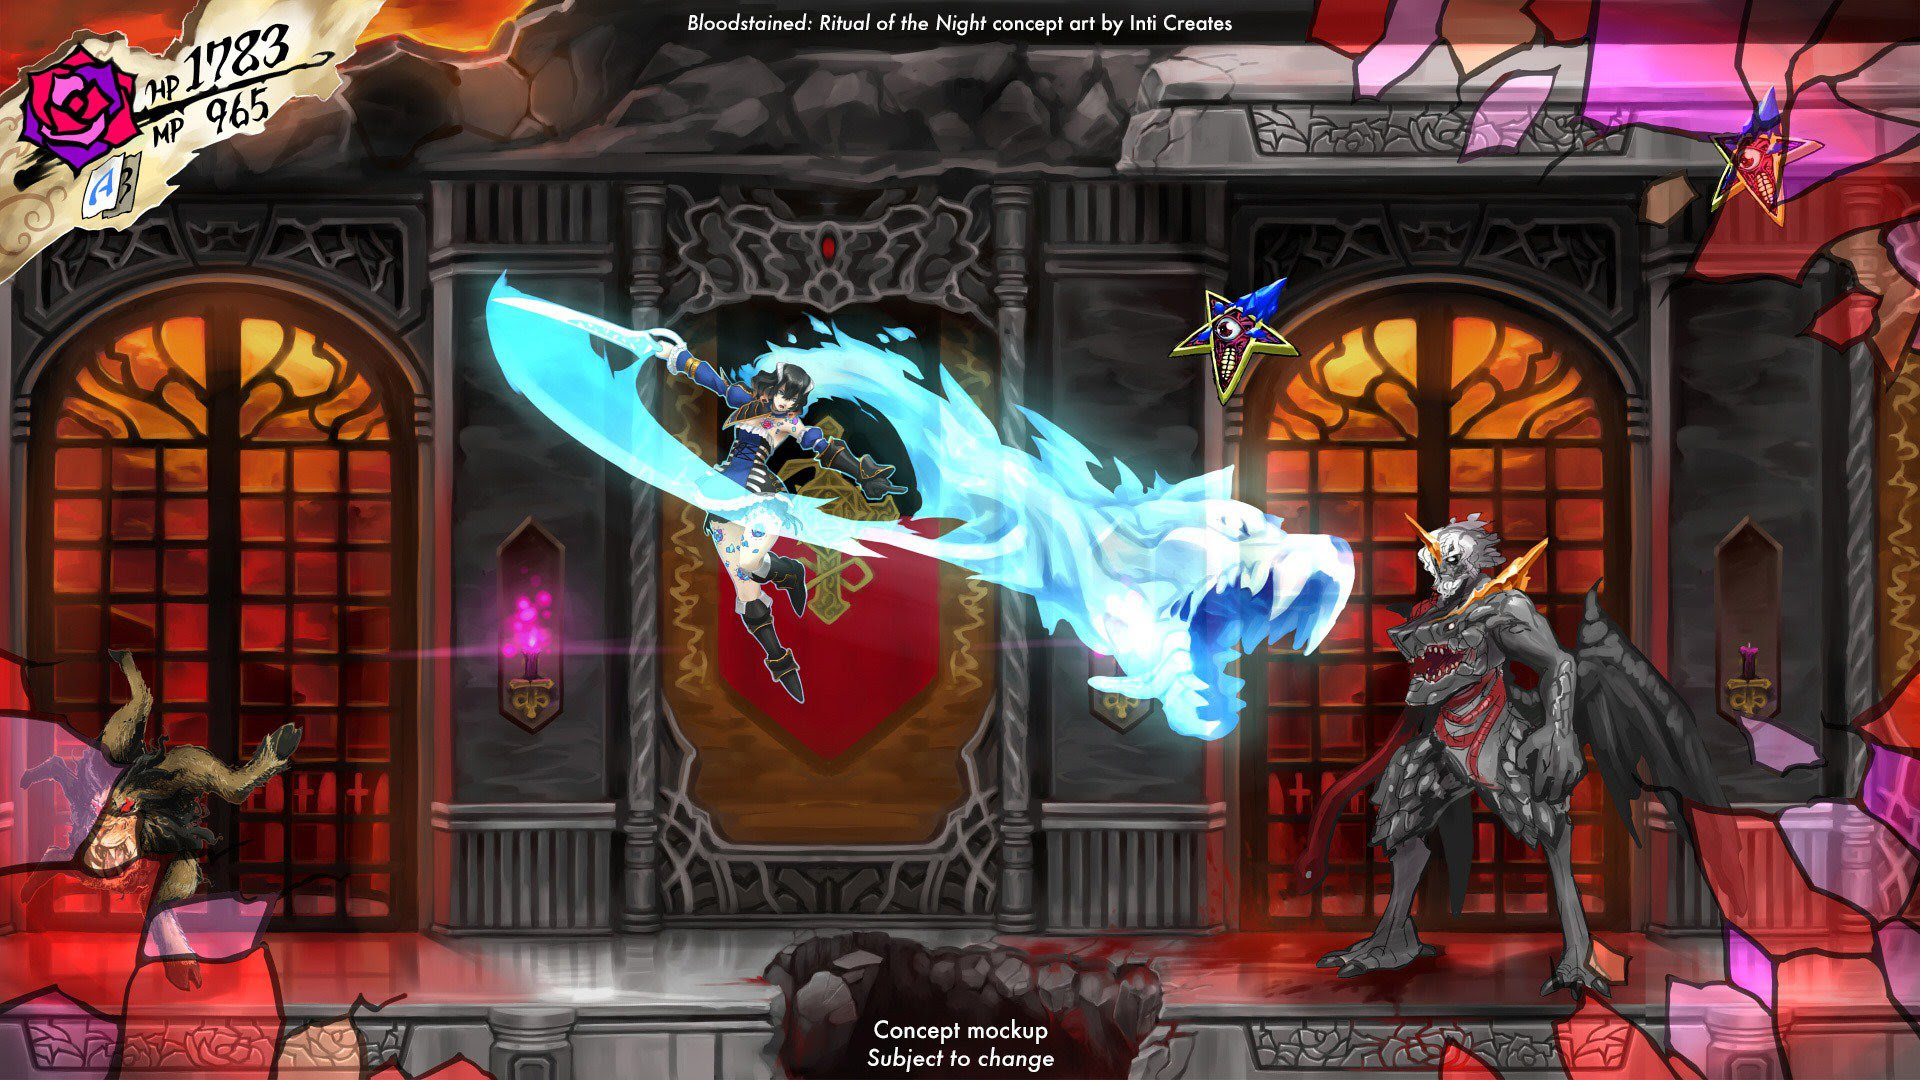 Bloodstained: Ritual of the Night already funded on Kickstarter - VG247